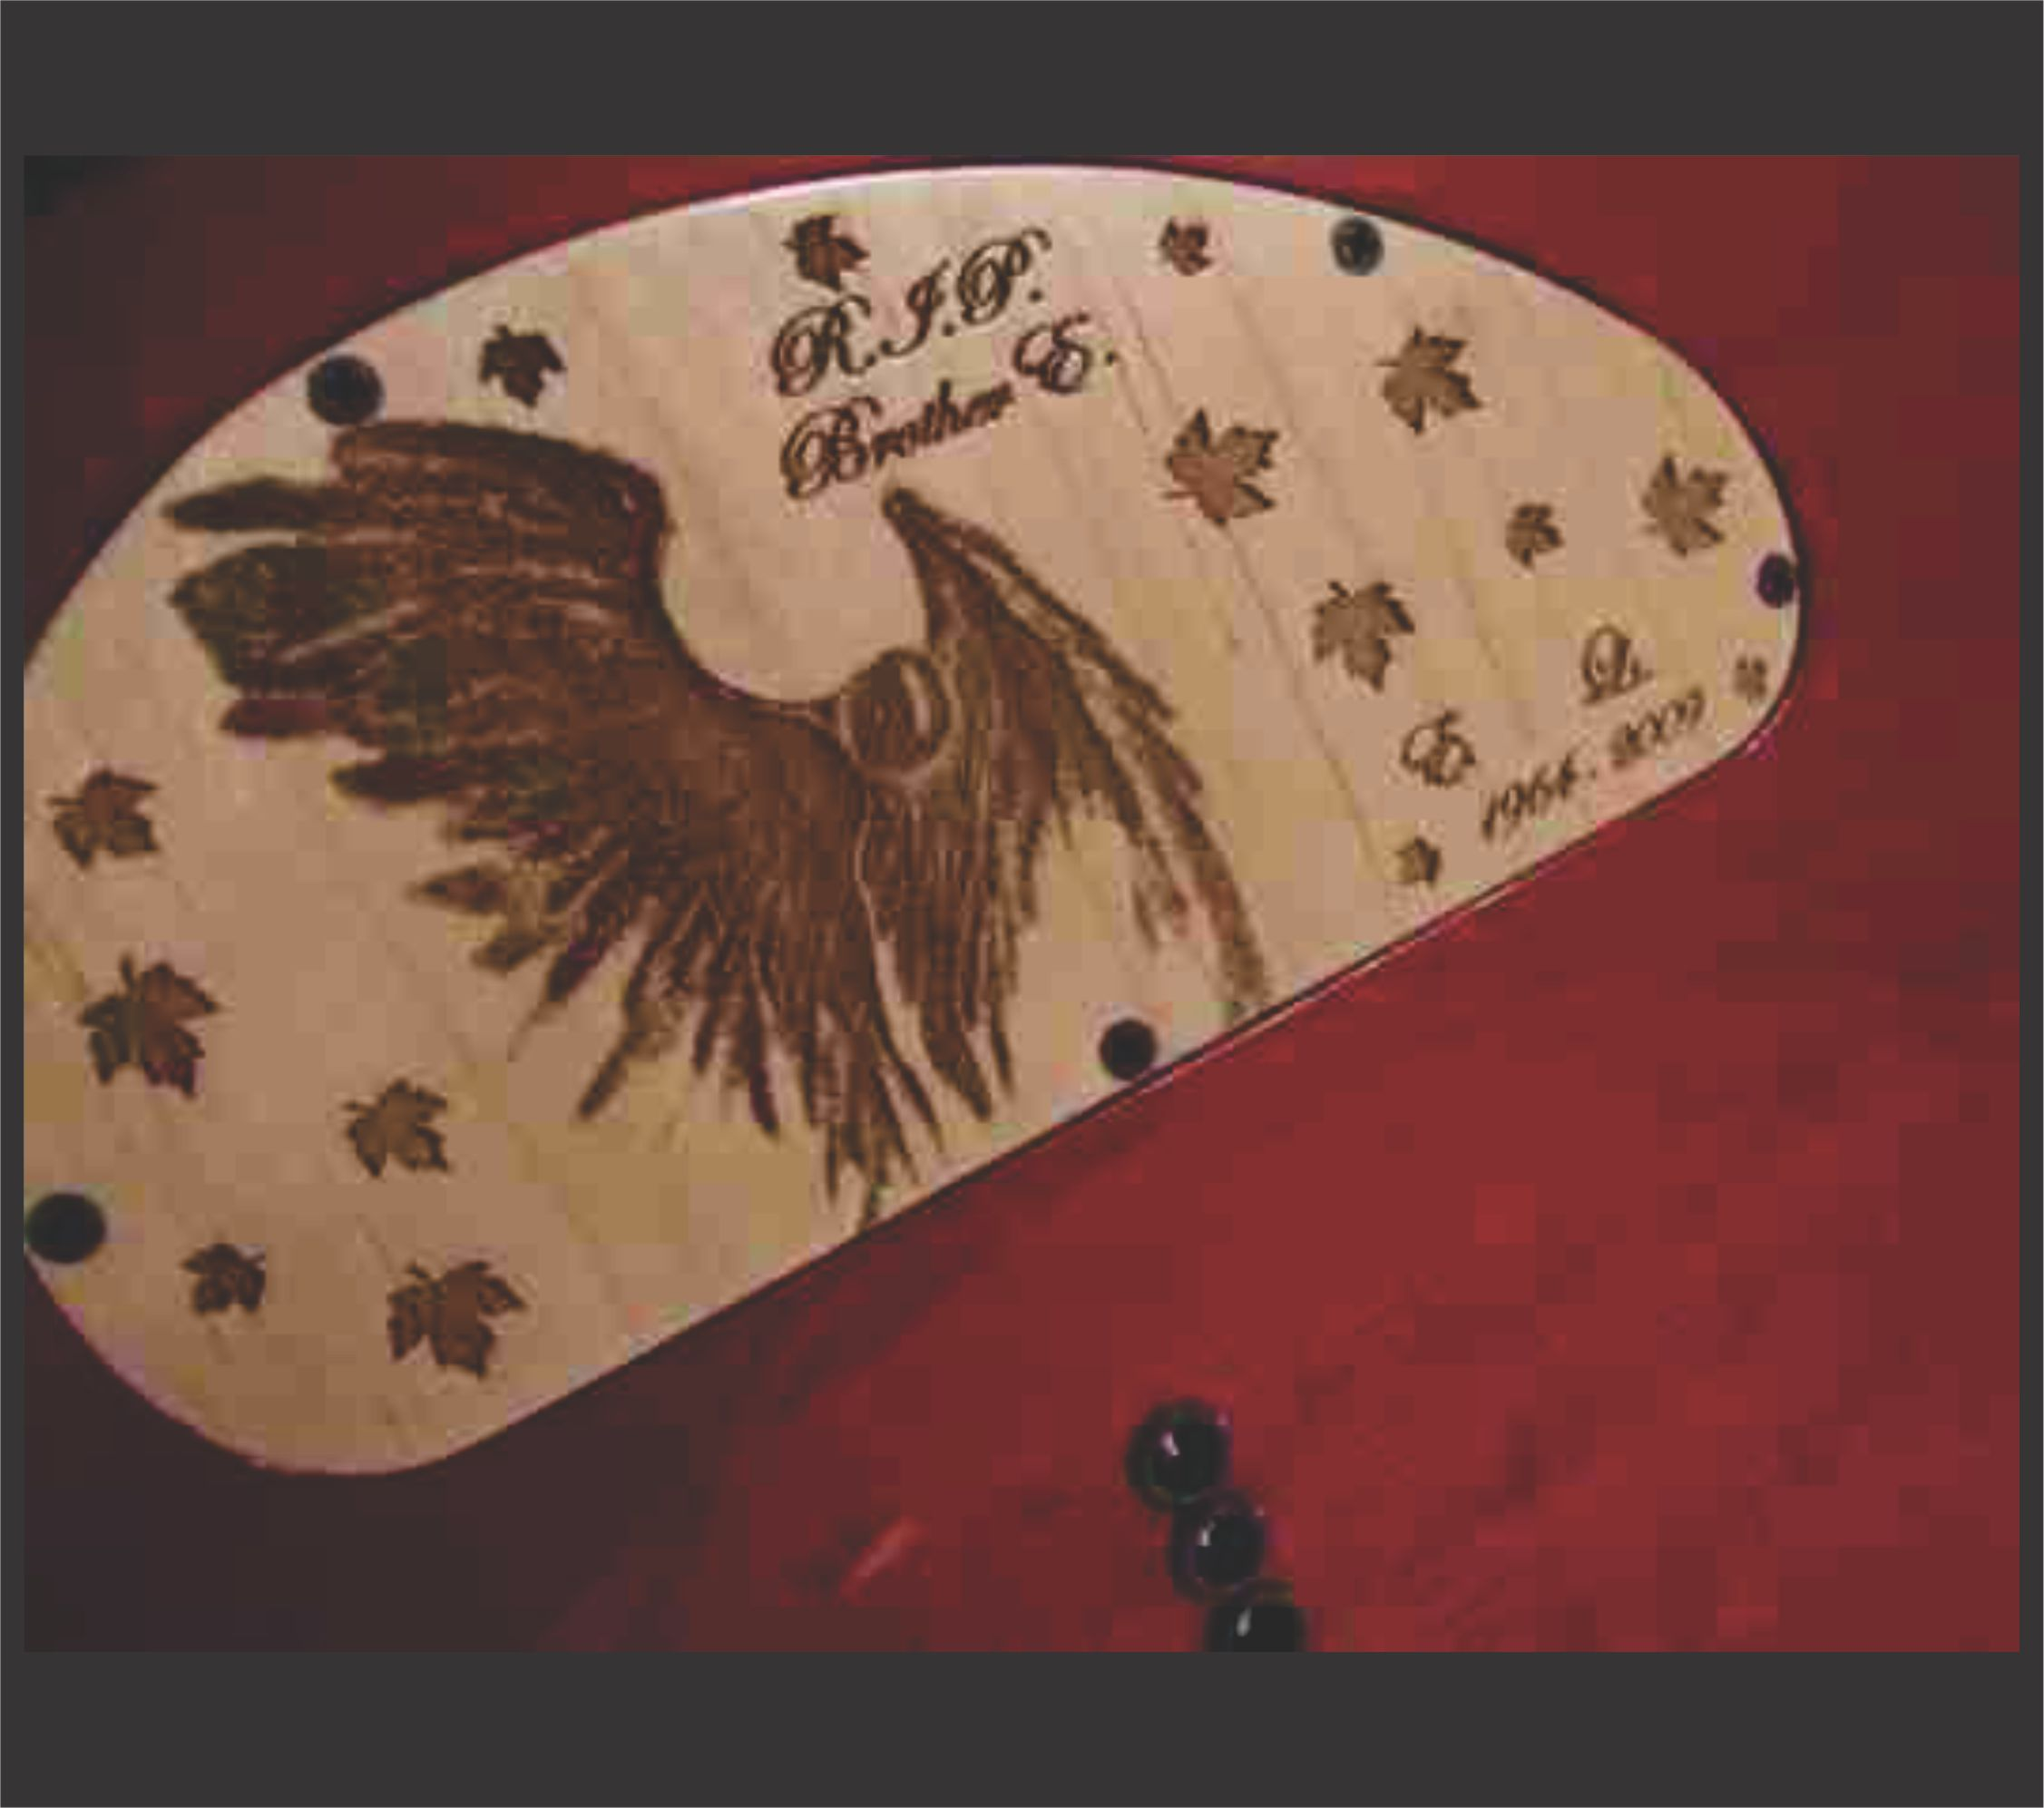 Angel Graphic Engraved Electronics Cover Done In Maple On Musicman Guitar